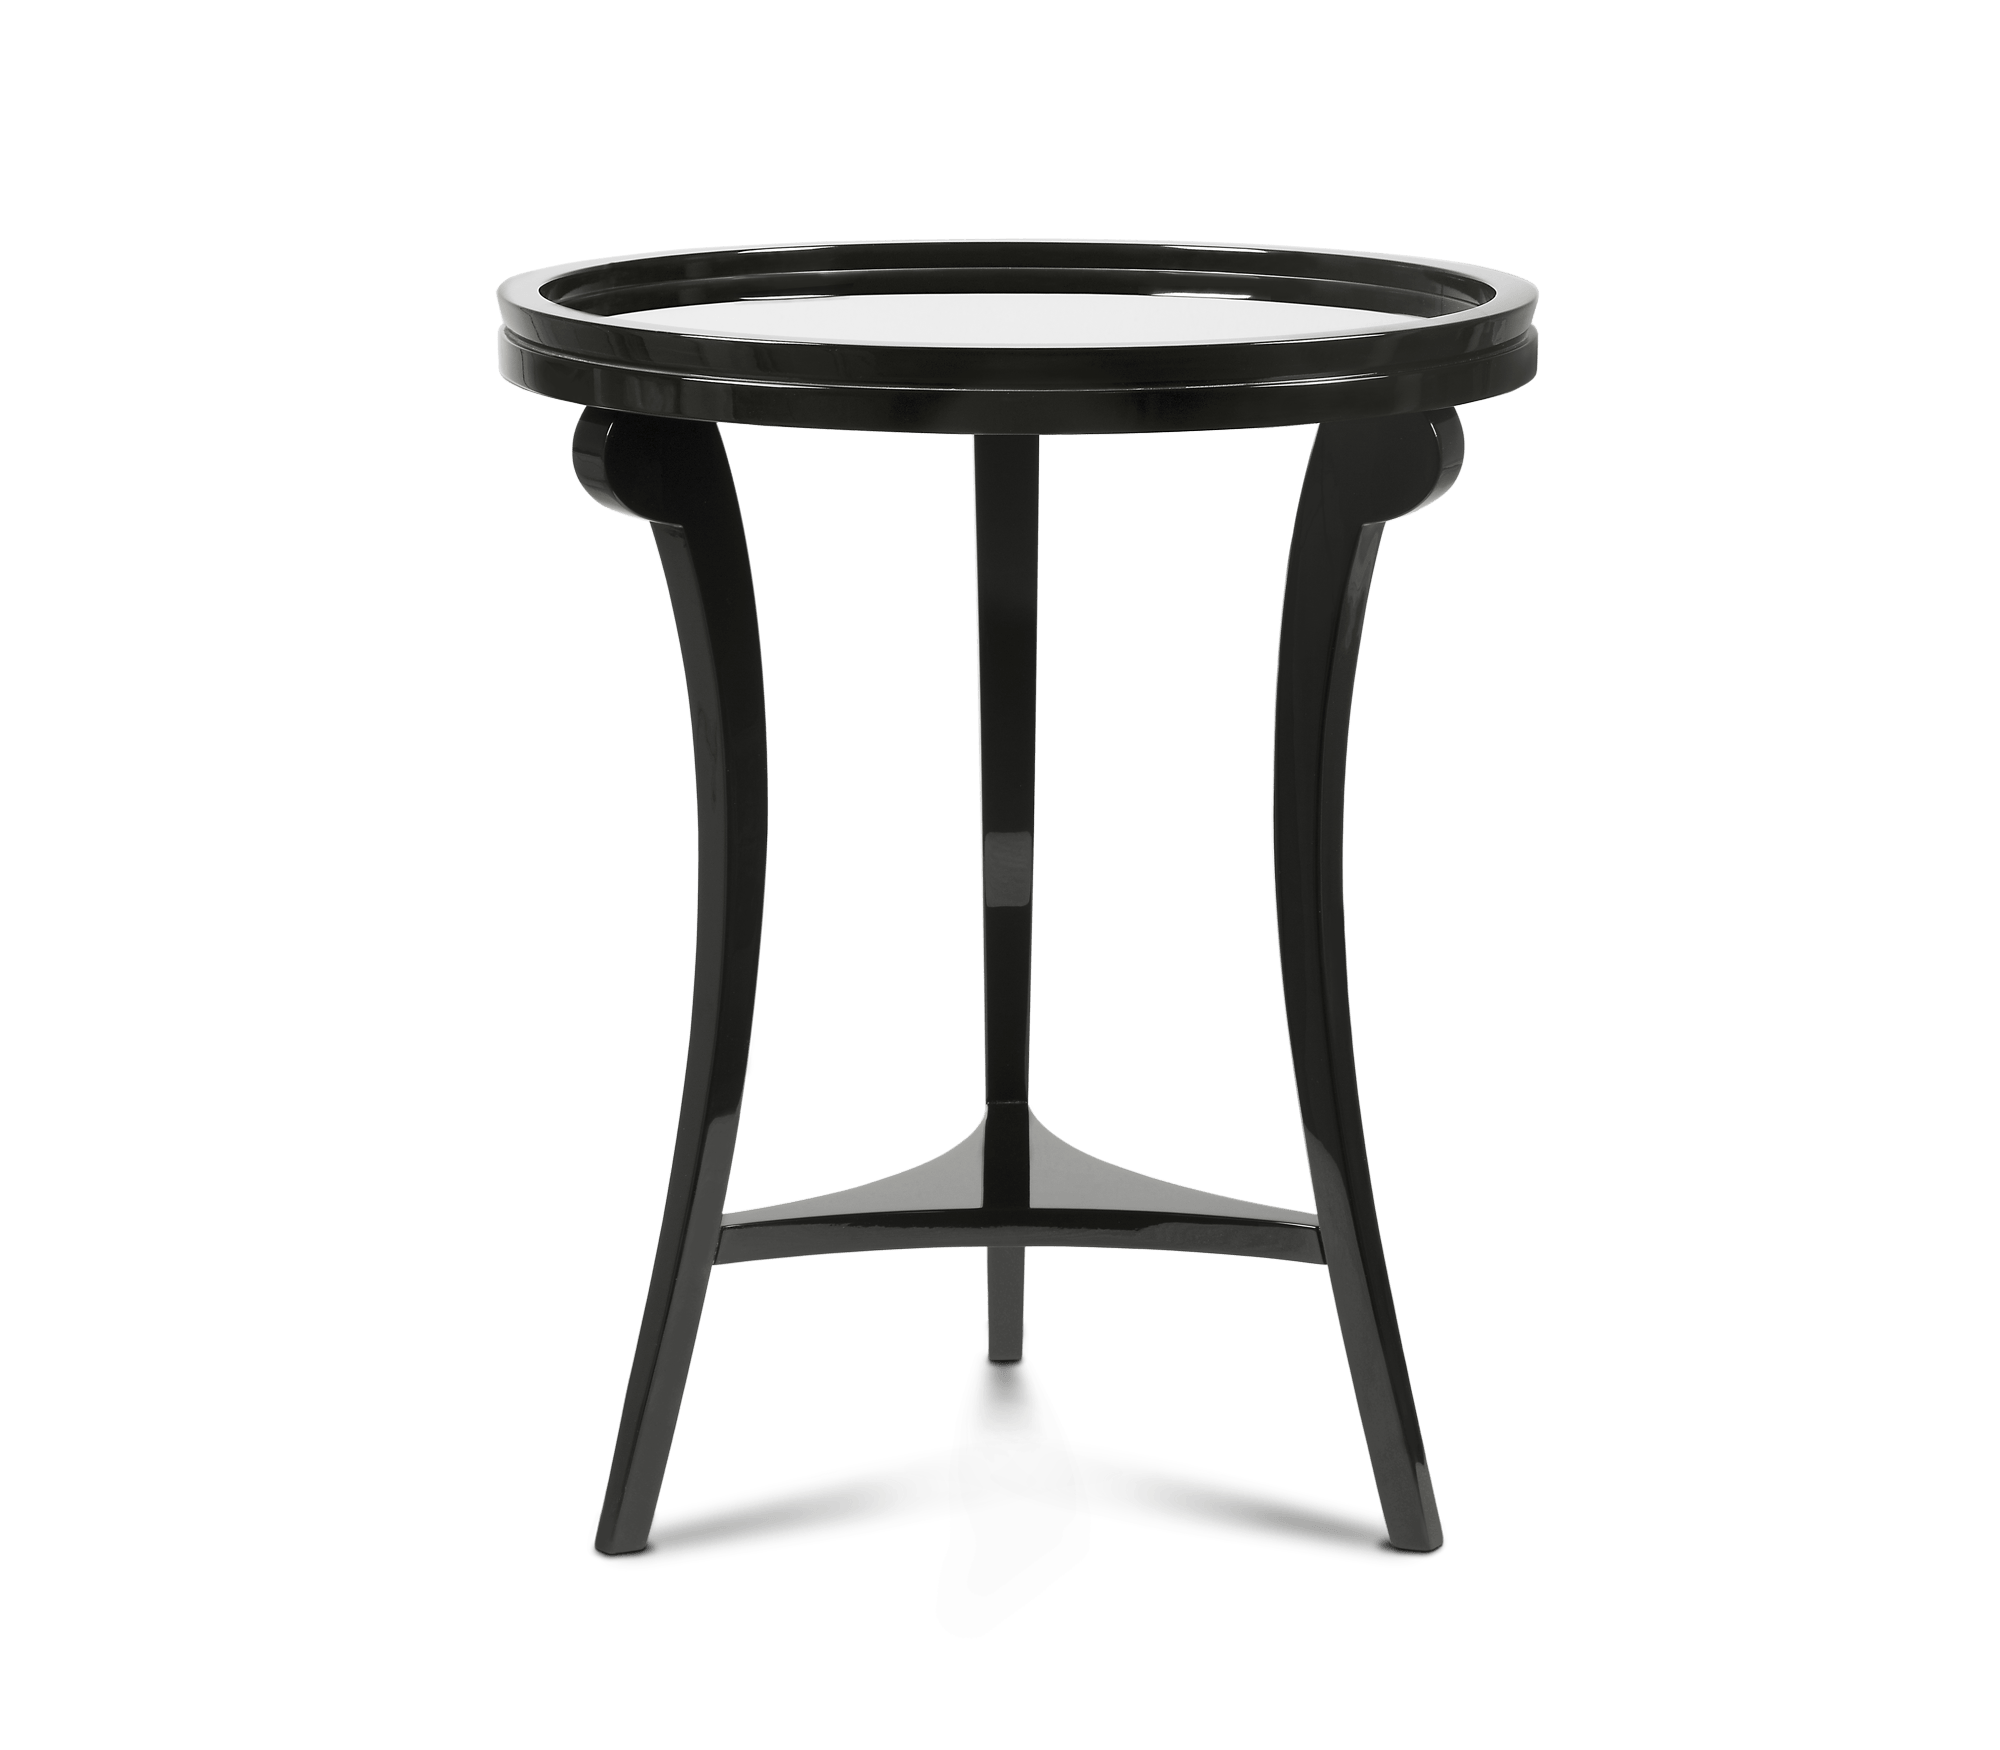 5th Side Table by Boca do Lobo